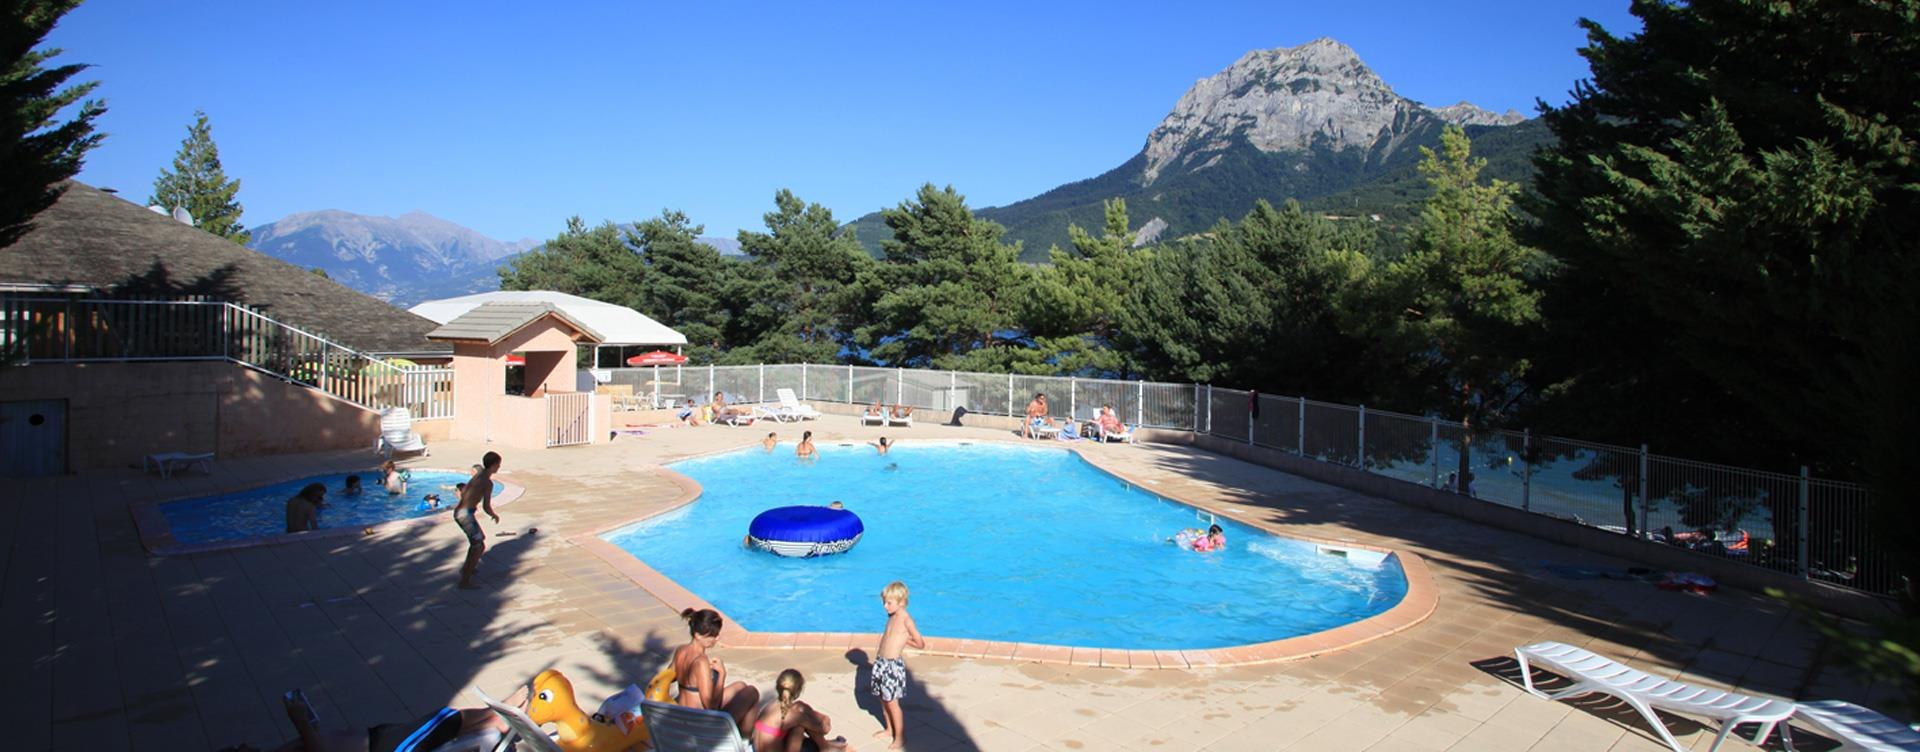 The swimming pool of the Camping Le Roustou